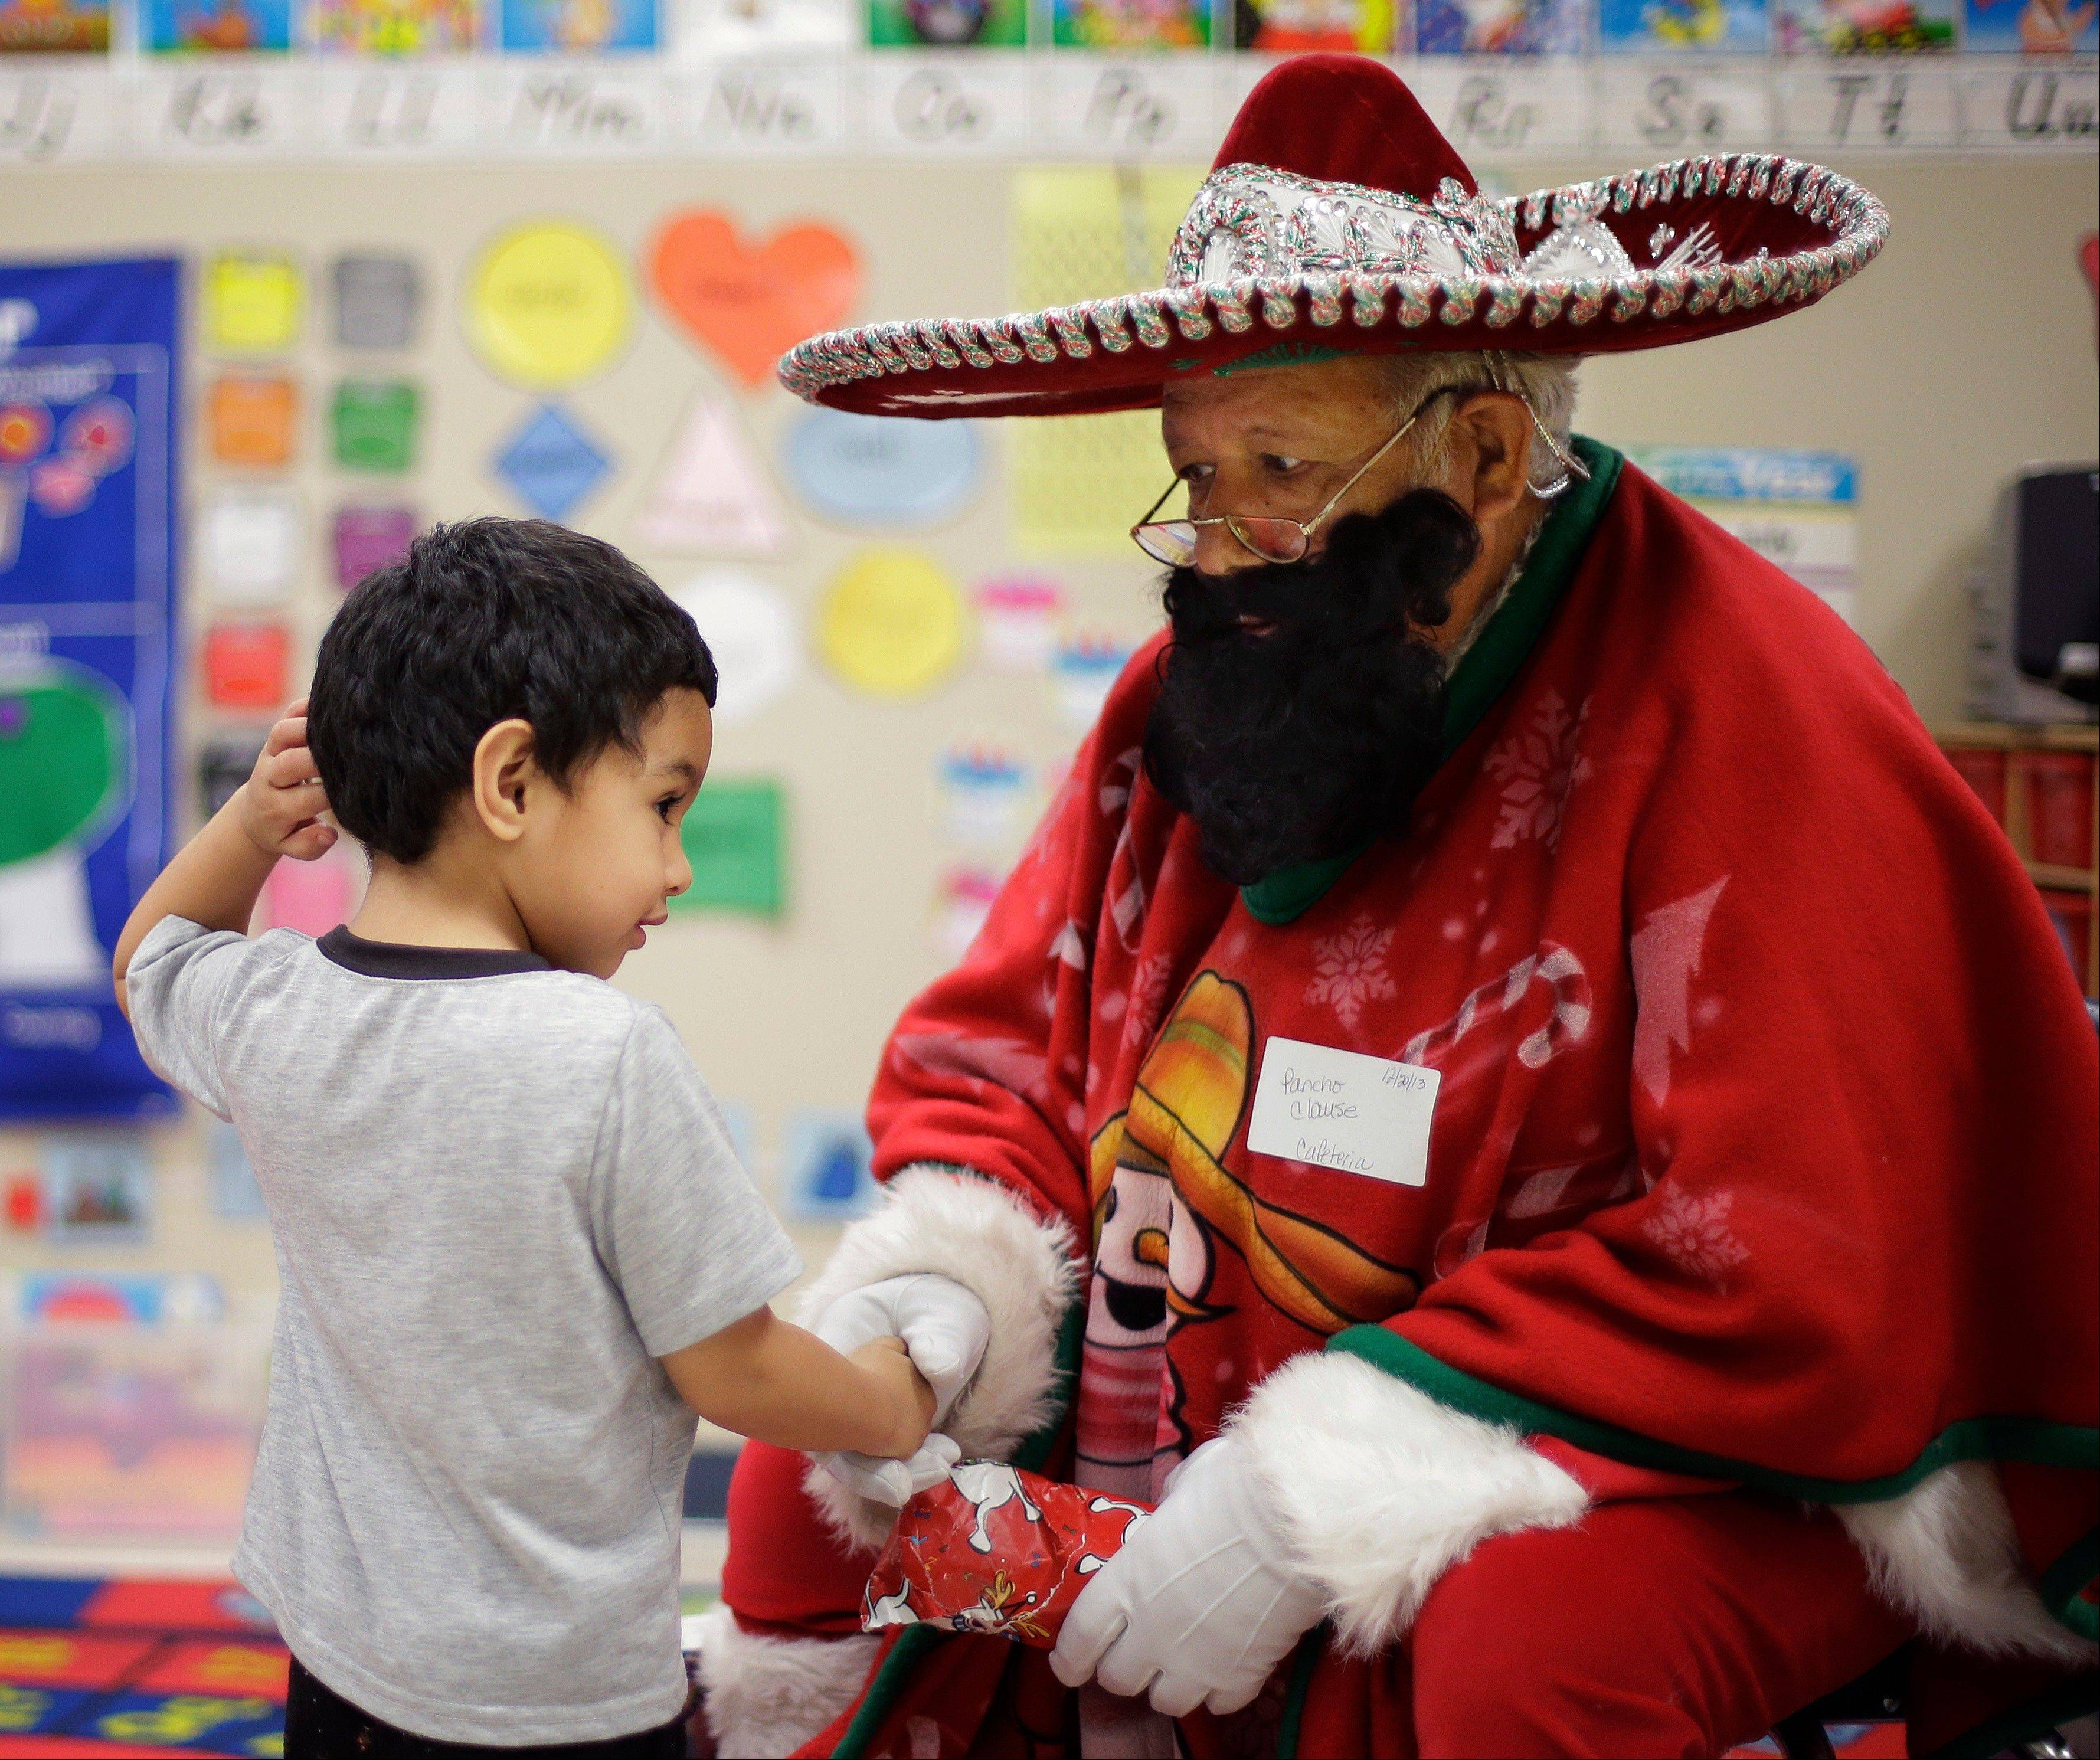 Pancho Claus, Rudy Martinez, right, visits with students at Knowlton Elementary School, in San Antonio. Pancho Claus, a Tex-Mex Santa borne from the Chicano civil rights movement in the late 1970s and early 1980s, is now an adored Christmas fixture in many Texas cities.